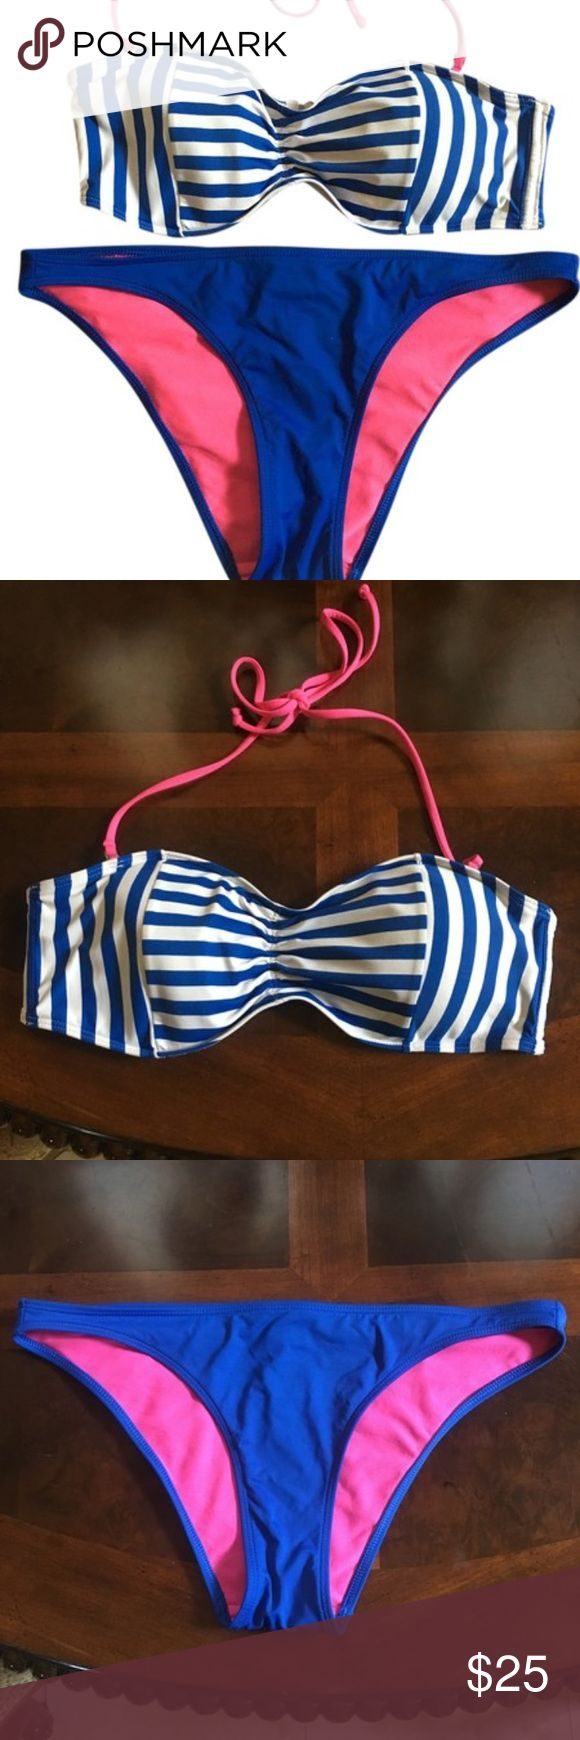 Abercrombie and Fitch Bikini Swimsuit Sexy, cute striped bikini top and bottom from A&F. Cheeky fit on the bottoms, perfect for a beach trip or hanging out at the pool. Abercrombie & Fitch Swim Bikinis